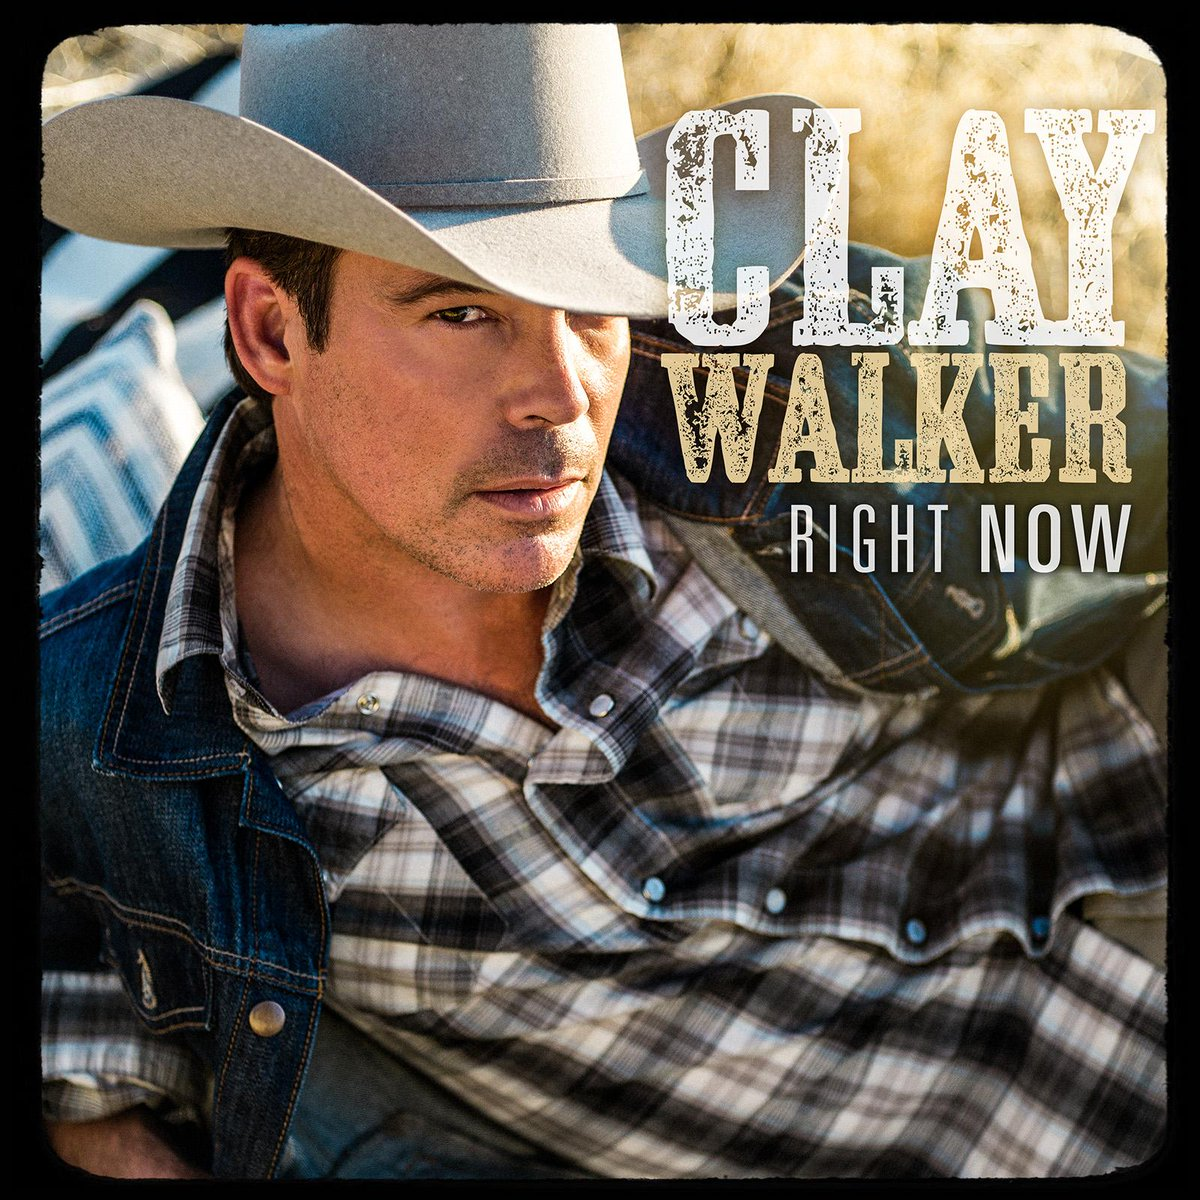 Check out @ClayWalker 's new single #RightNow! Download from @iTunes here: http://t.co/hhk8ydODTs #iTunes http://t.co/TJbgPZitTK